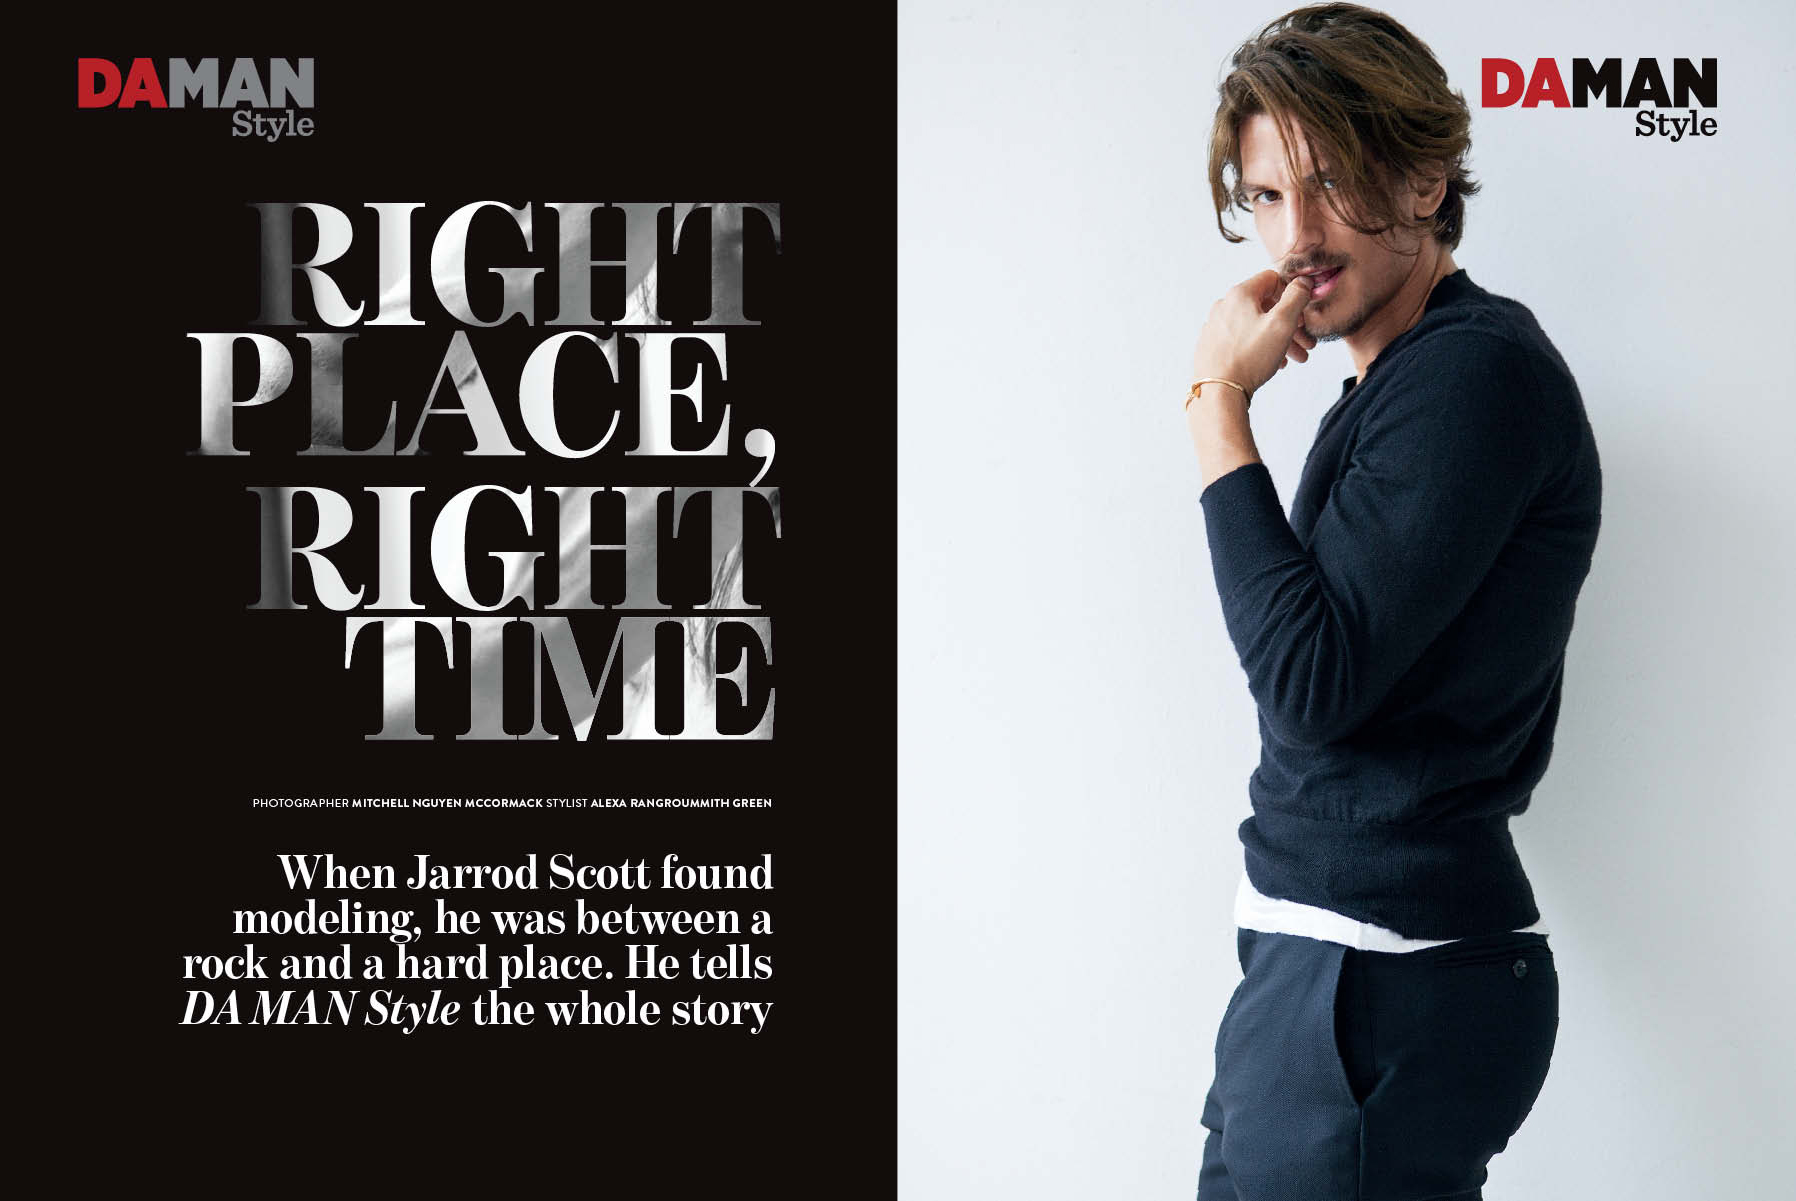 RIGHT PLACE, RIGHT TIME | DAMAN STYLE MAGAZINE